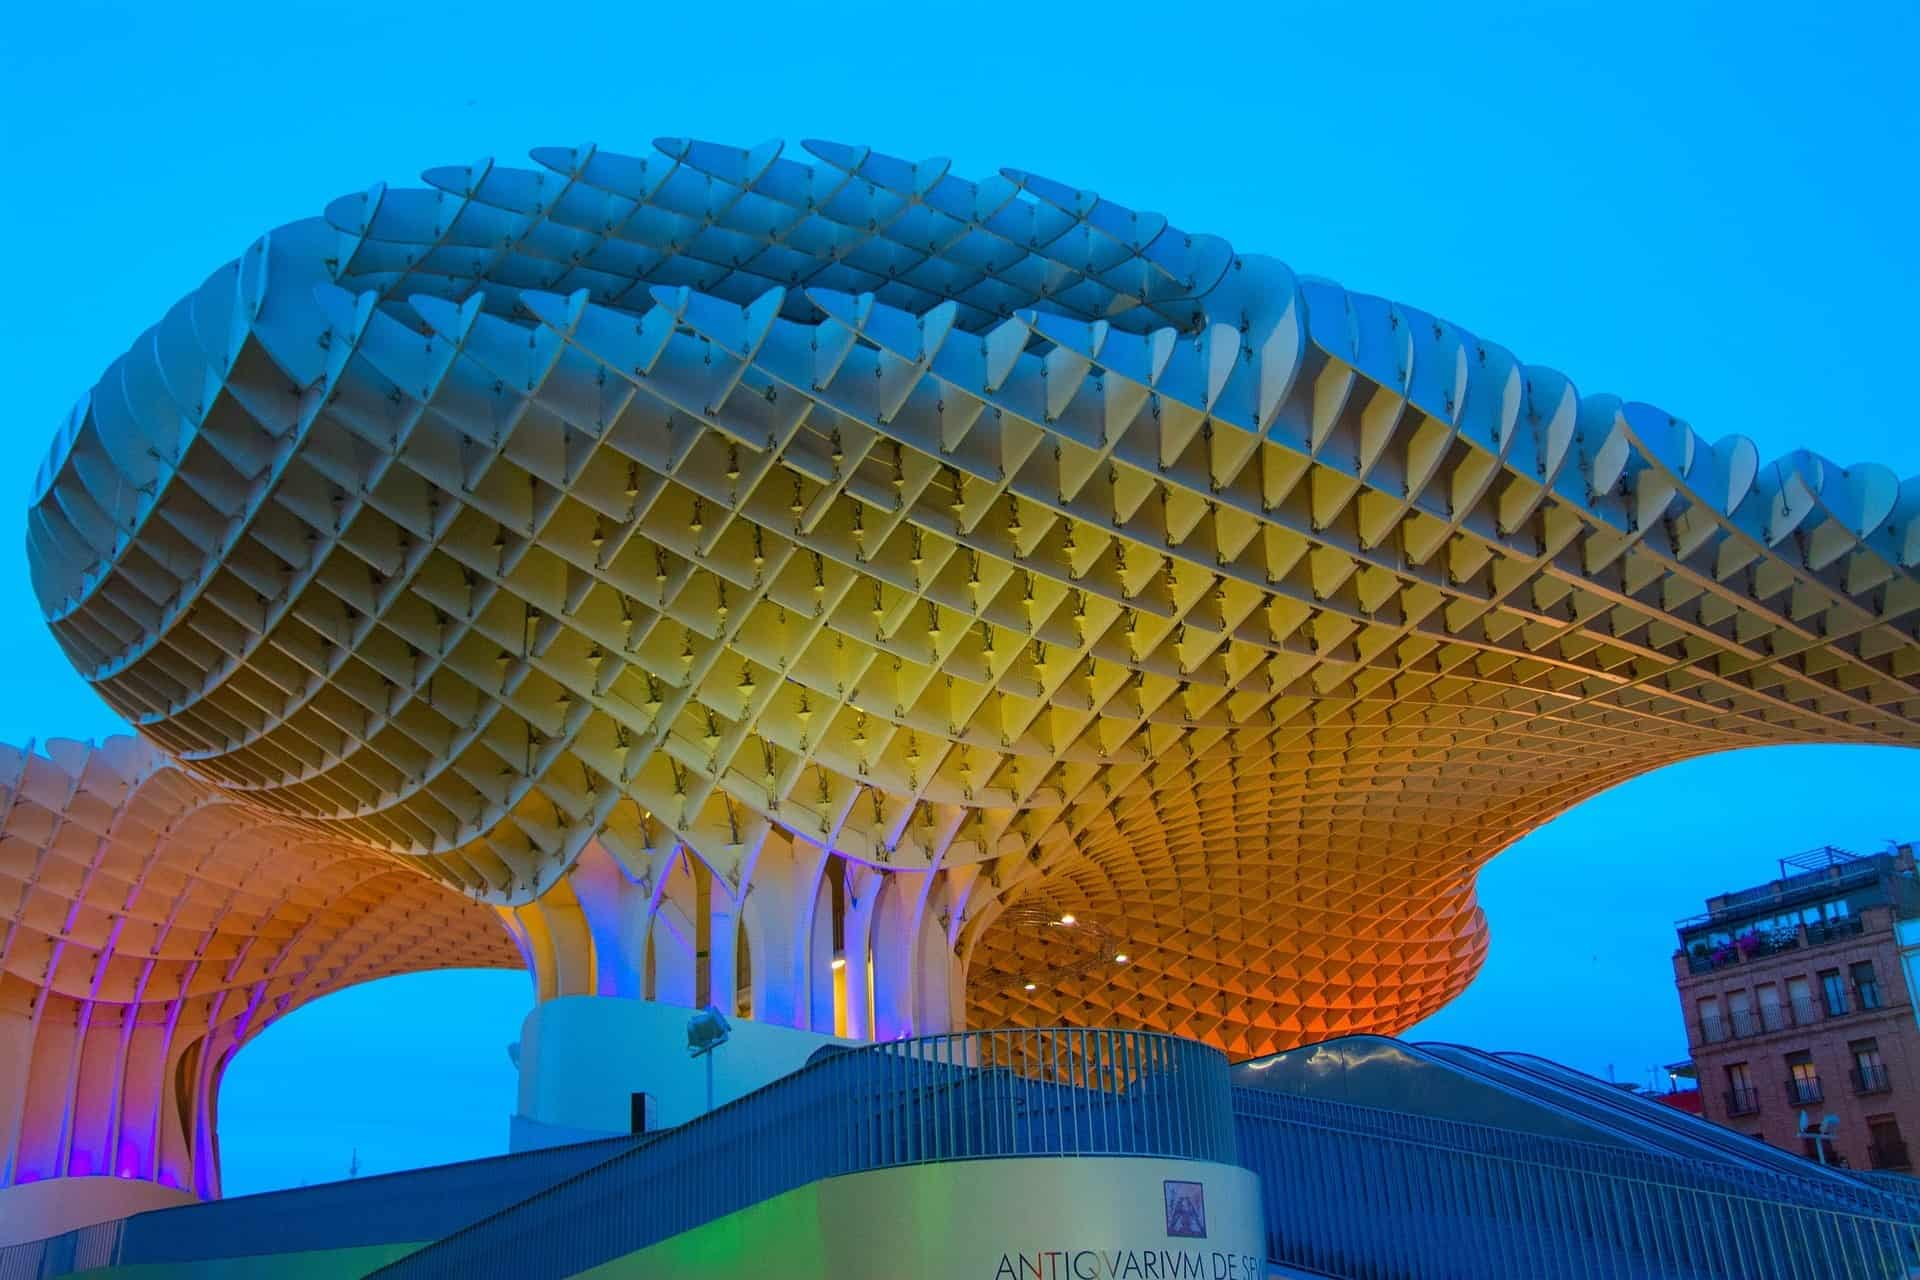 Best things to do in Seville see the Setas at night lit up